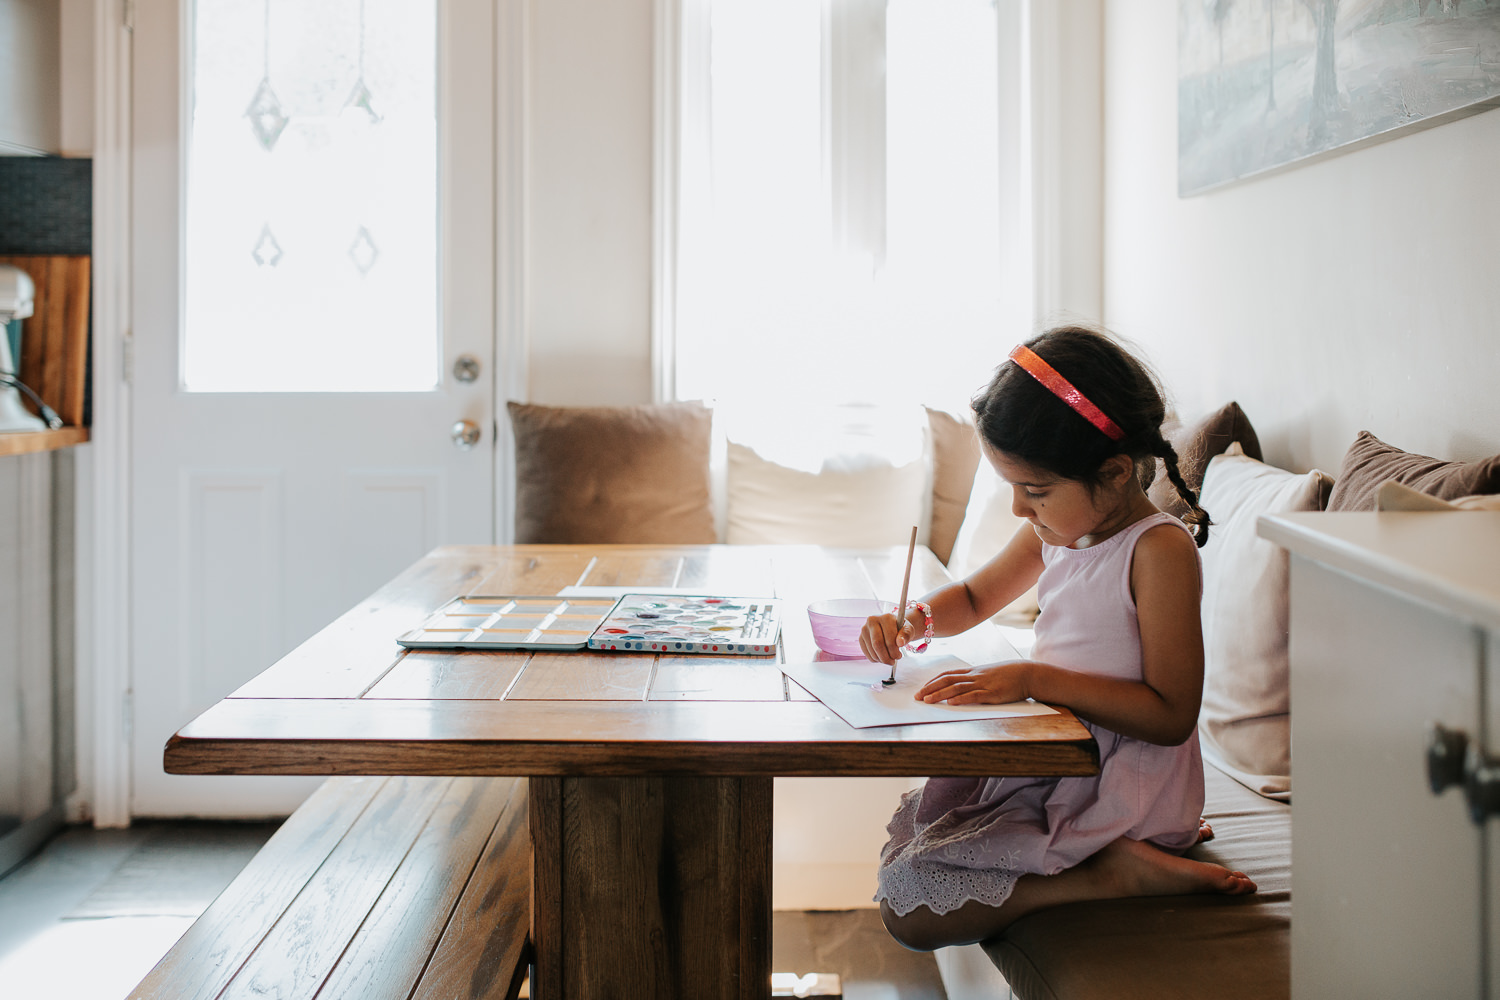 4 year old toddler girl with dark hair in pigtails wearing purple dress sitting at kitchen table painting with watercolours - Newmarket Lifestyle Photos